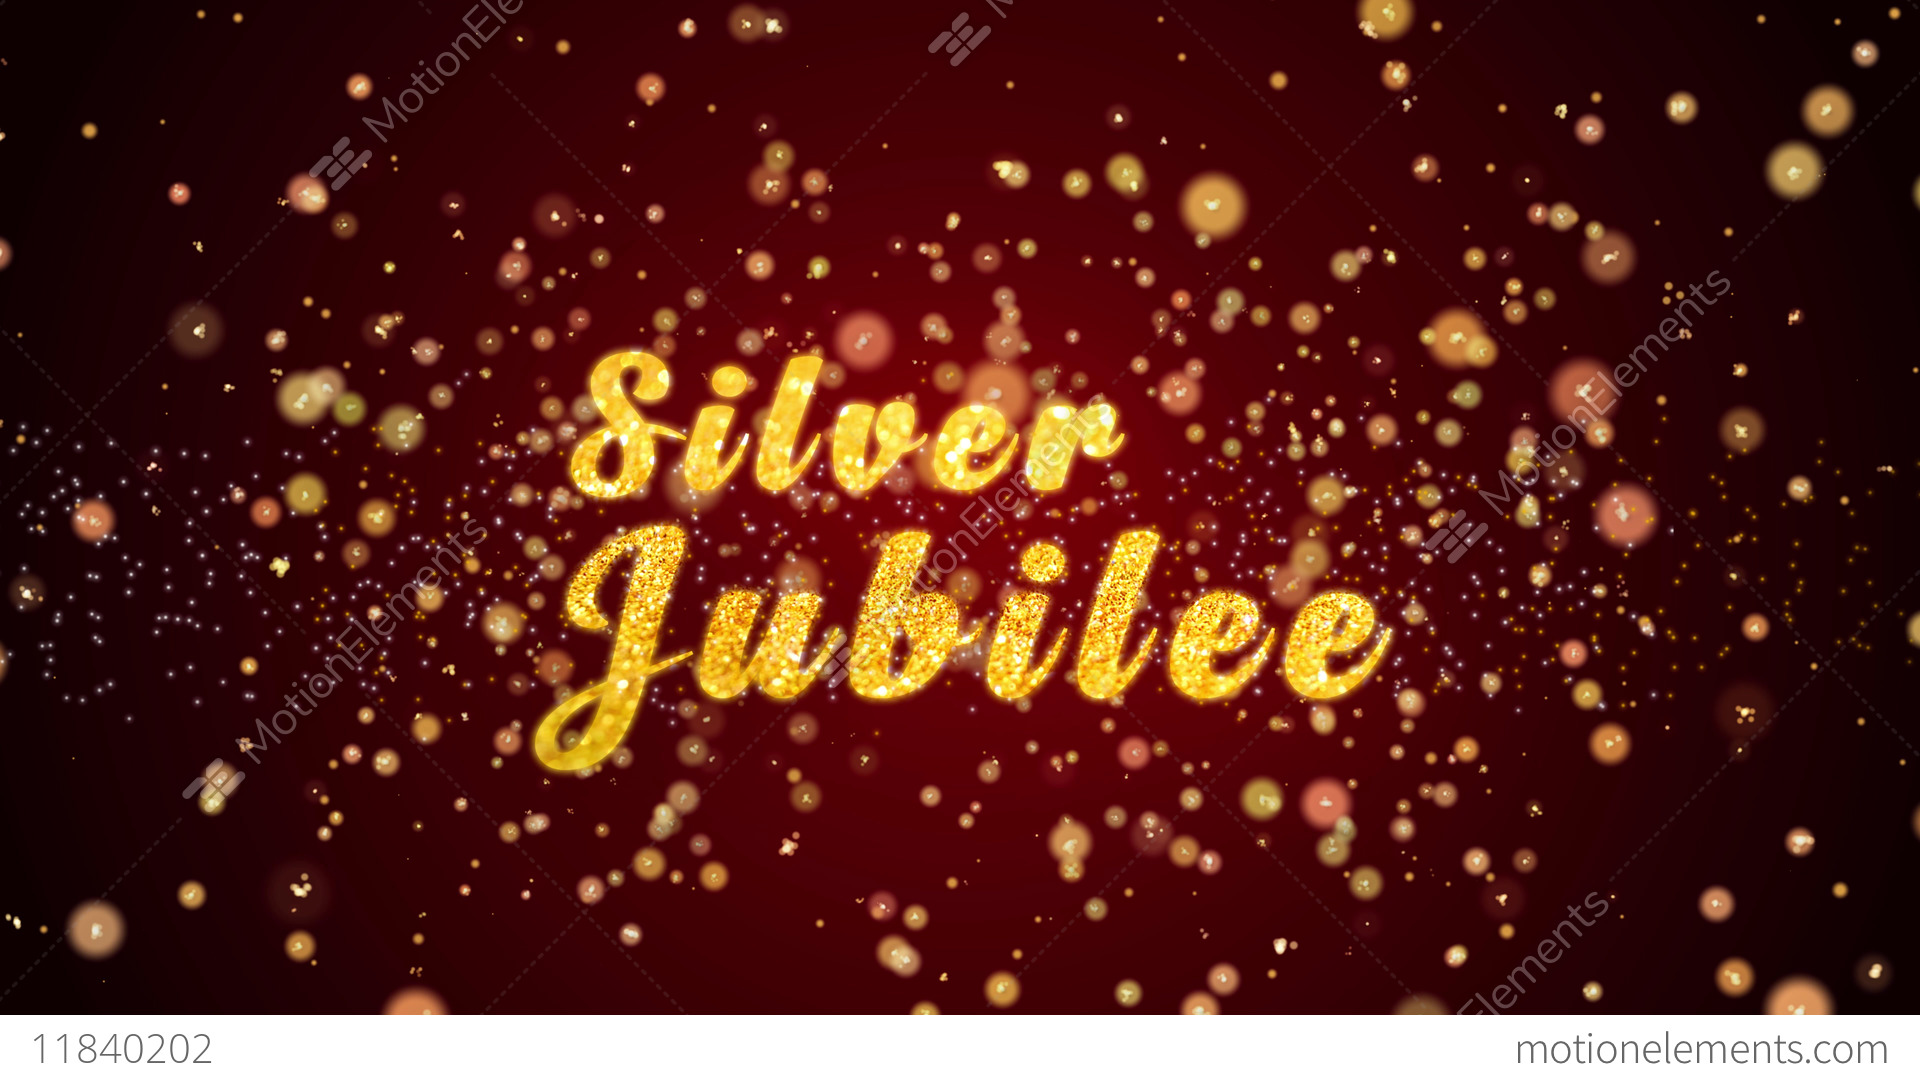 Silver Jubilee Greeting Card Text Shiny Particles For Celebration ...